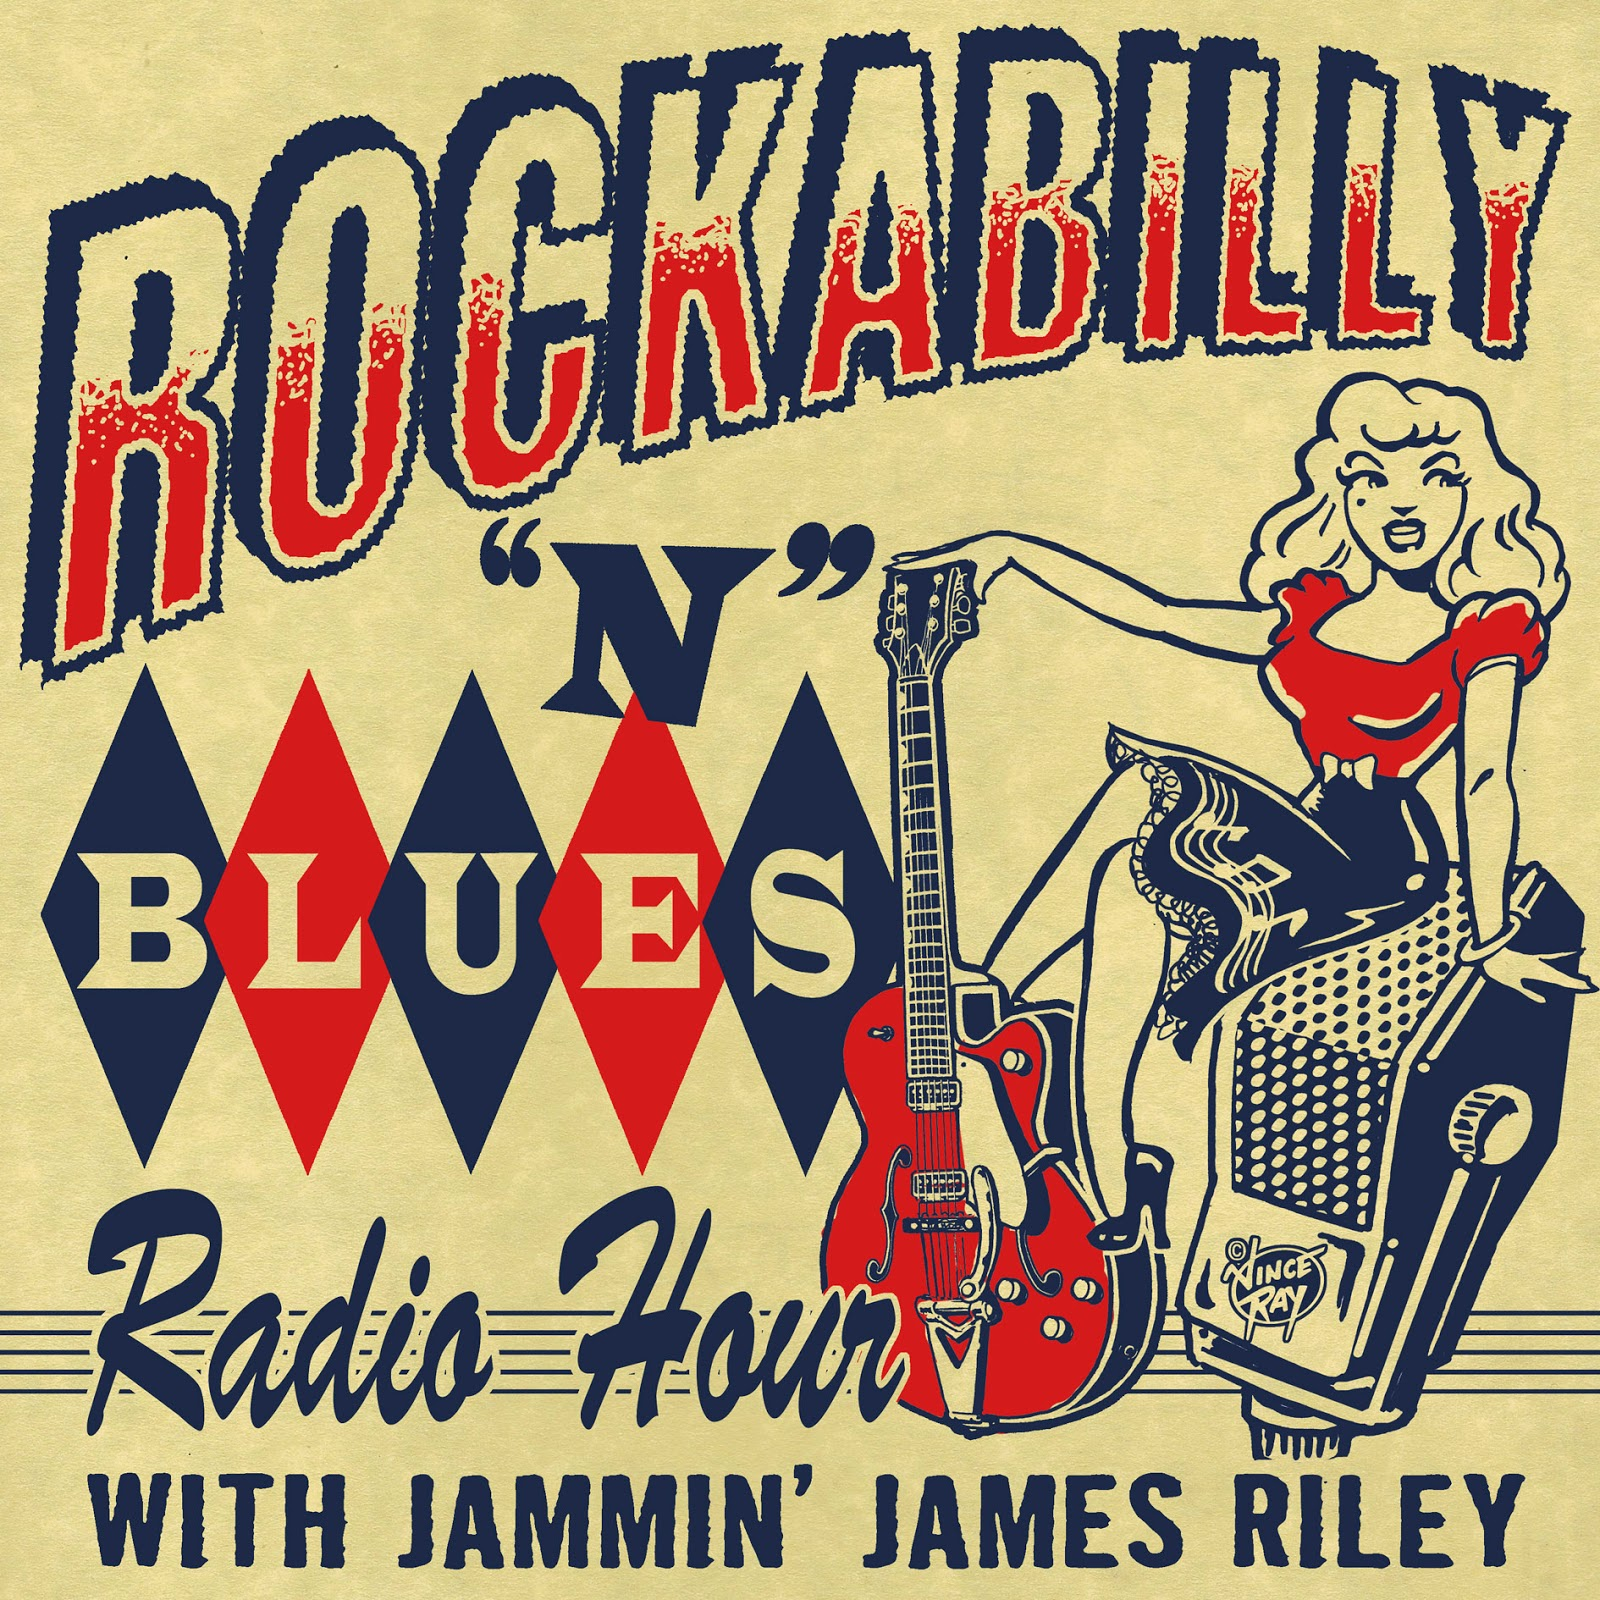 Rockabilly N Blues Radio Hour Archives page, stream or download shows…